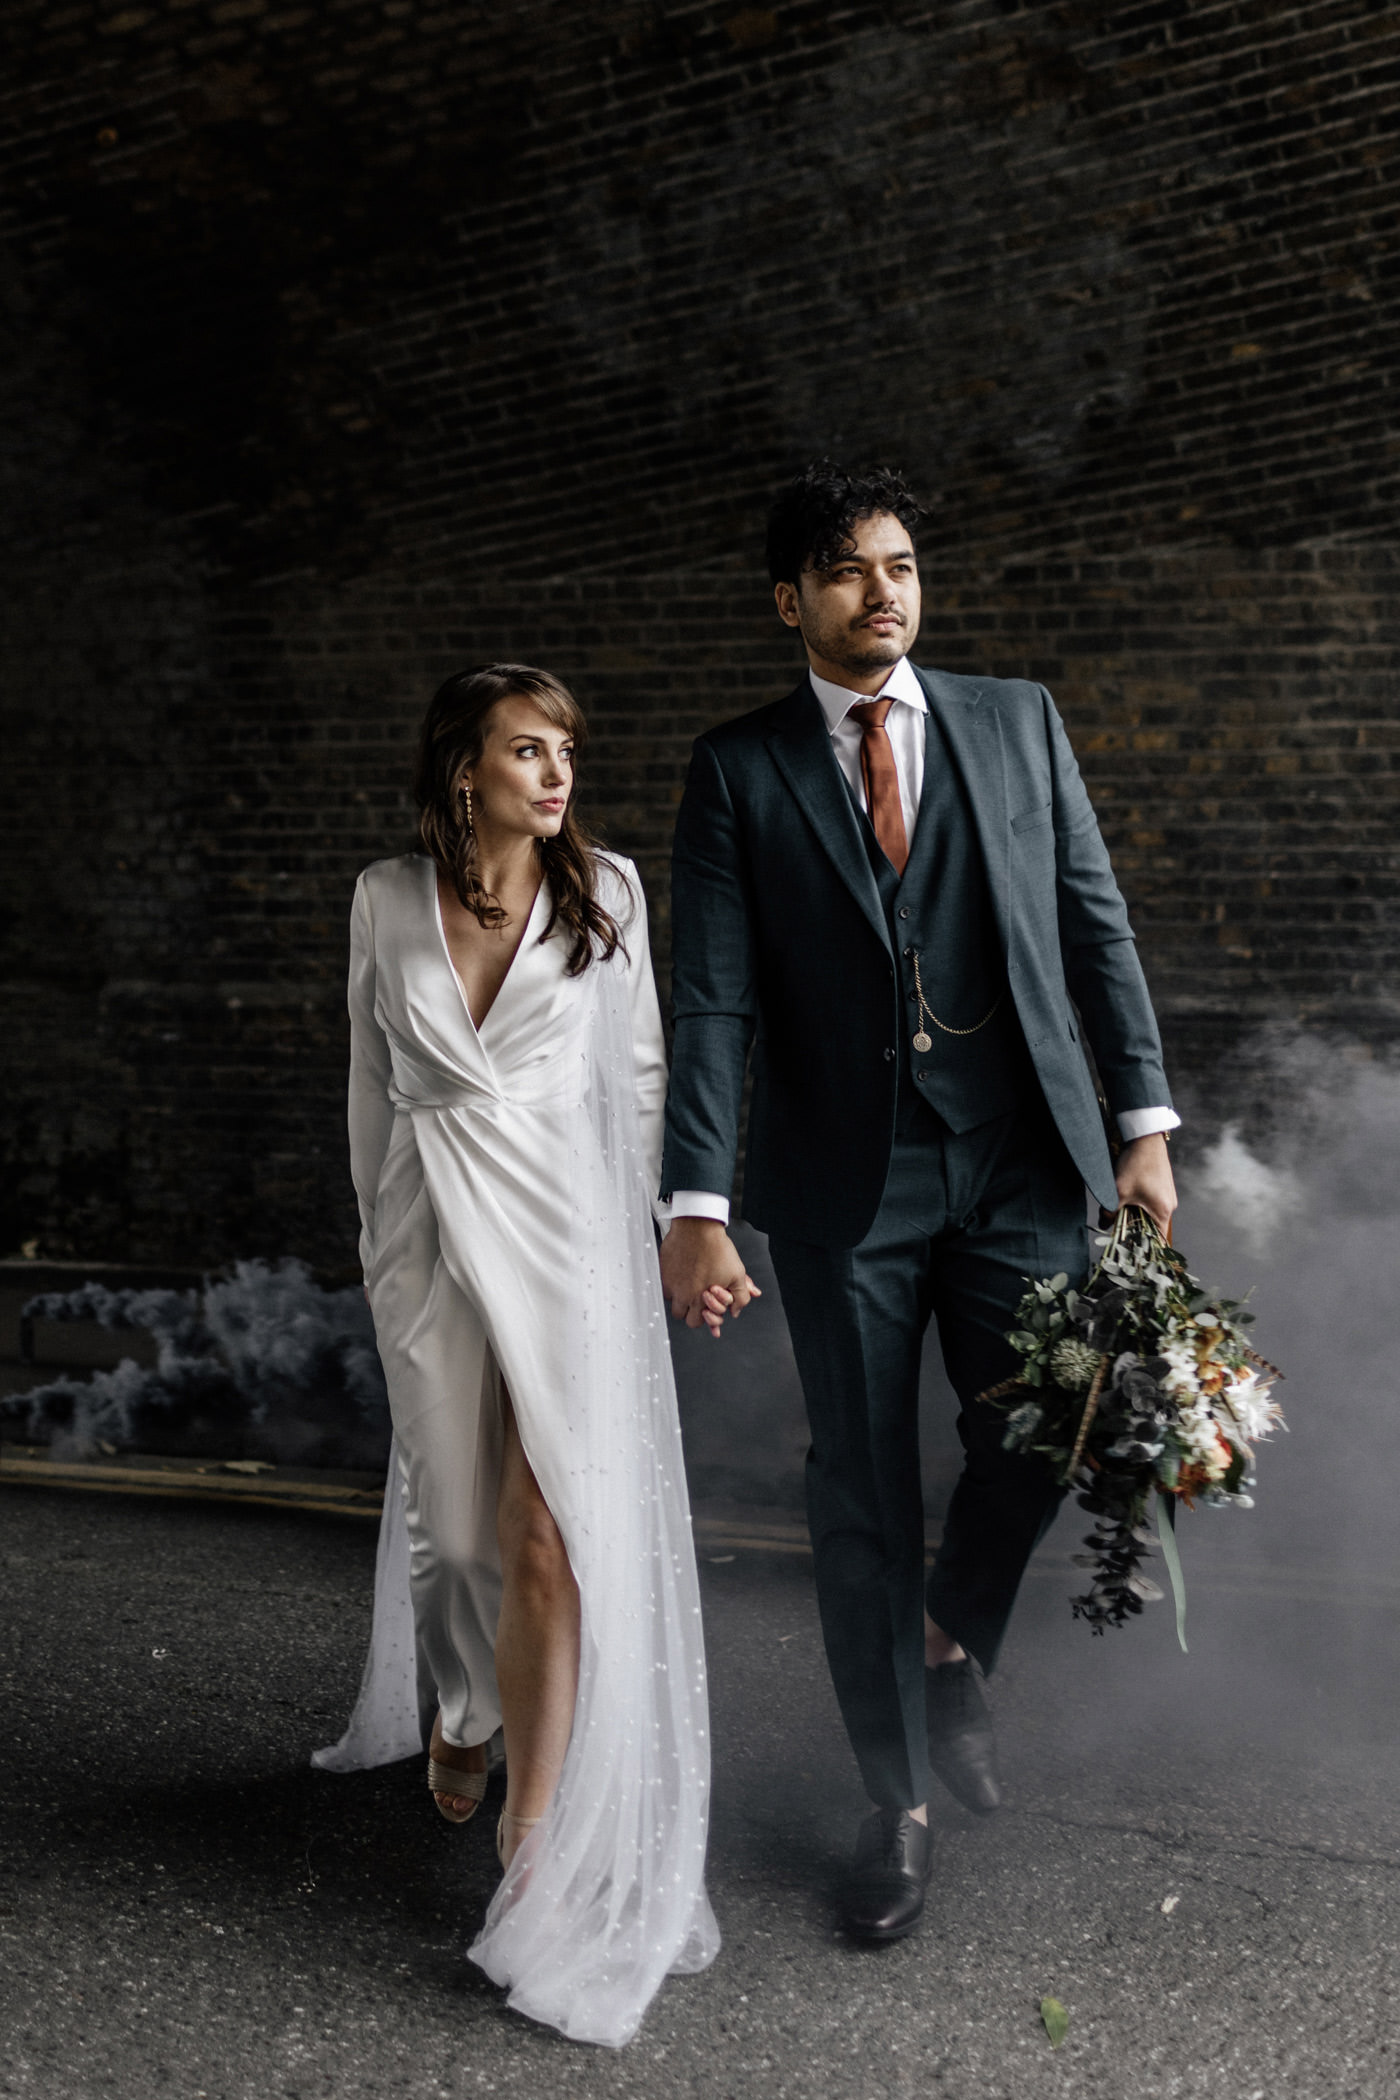 stylish london and destination wedding photographer